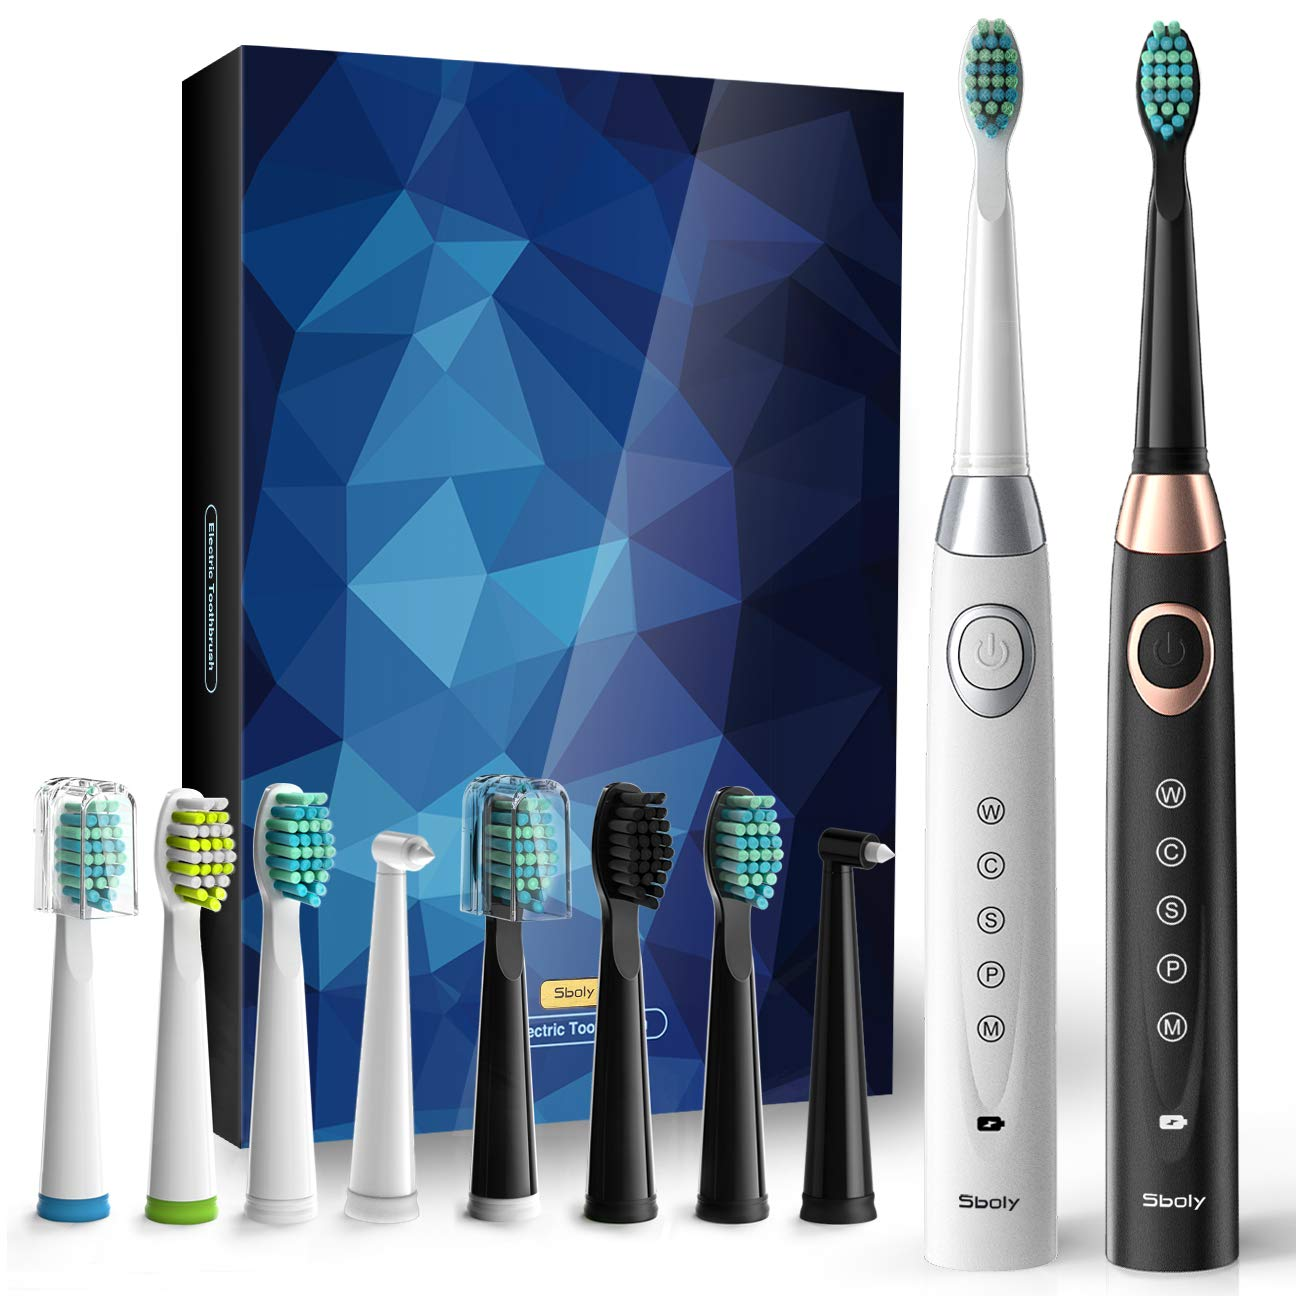 2 Sonic Electric Toothbrushes 5 Modes 8 Brush heads USB Fast Charge Powered Toothbrush Last for 30 Days, Built-in Smart Timer Rechargeable Toothbrushes for Adults and Kids (1 Black And 1 White) by Sboly